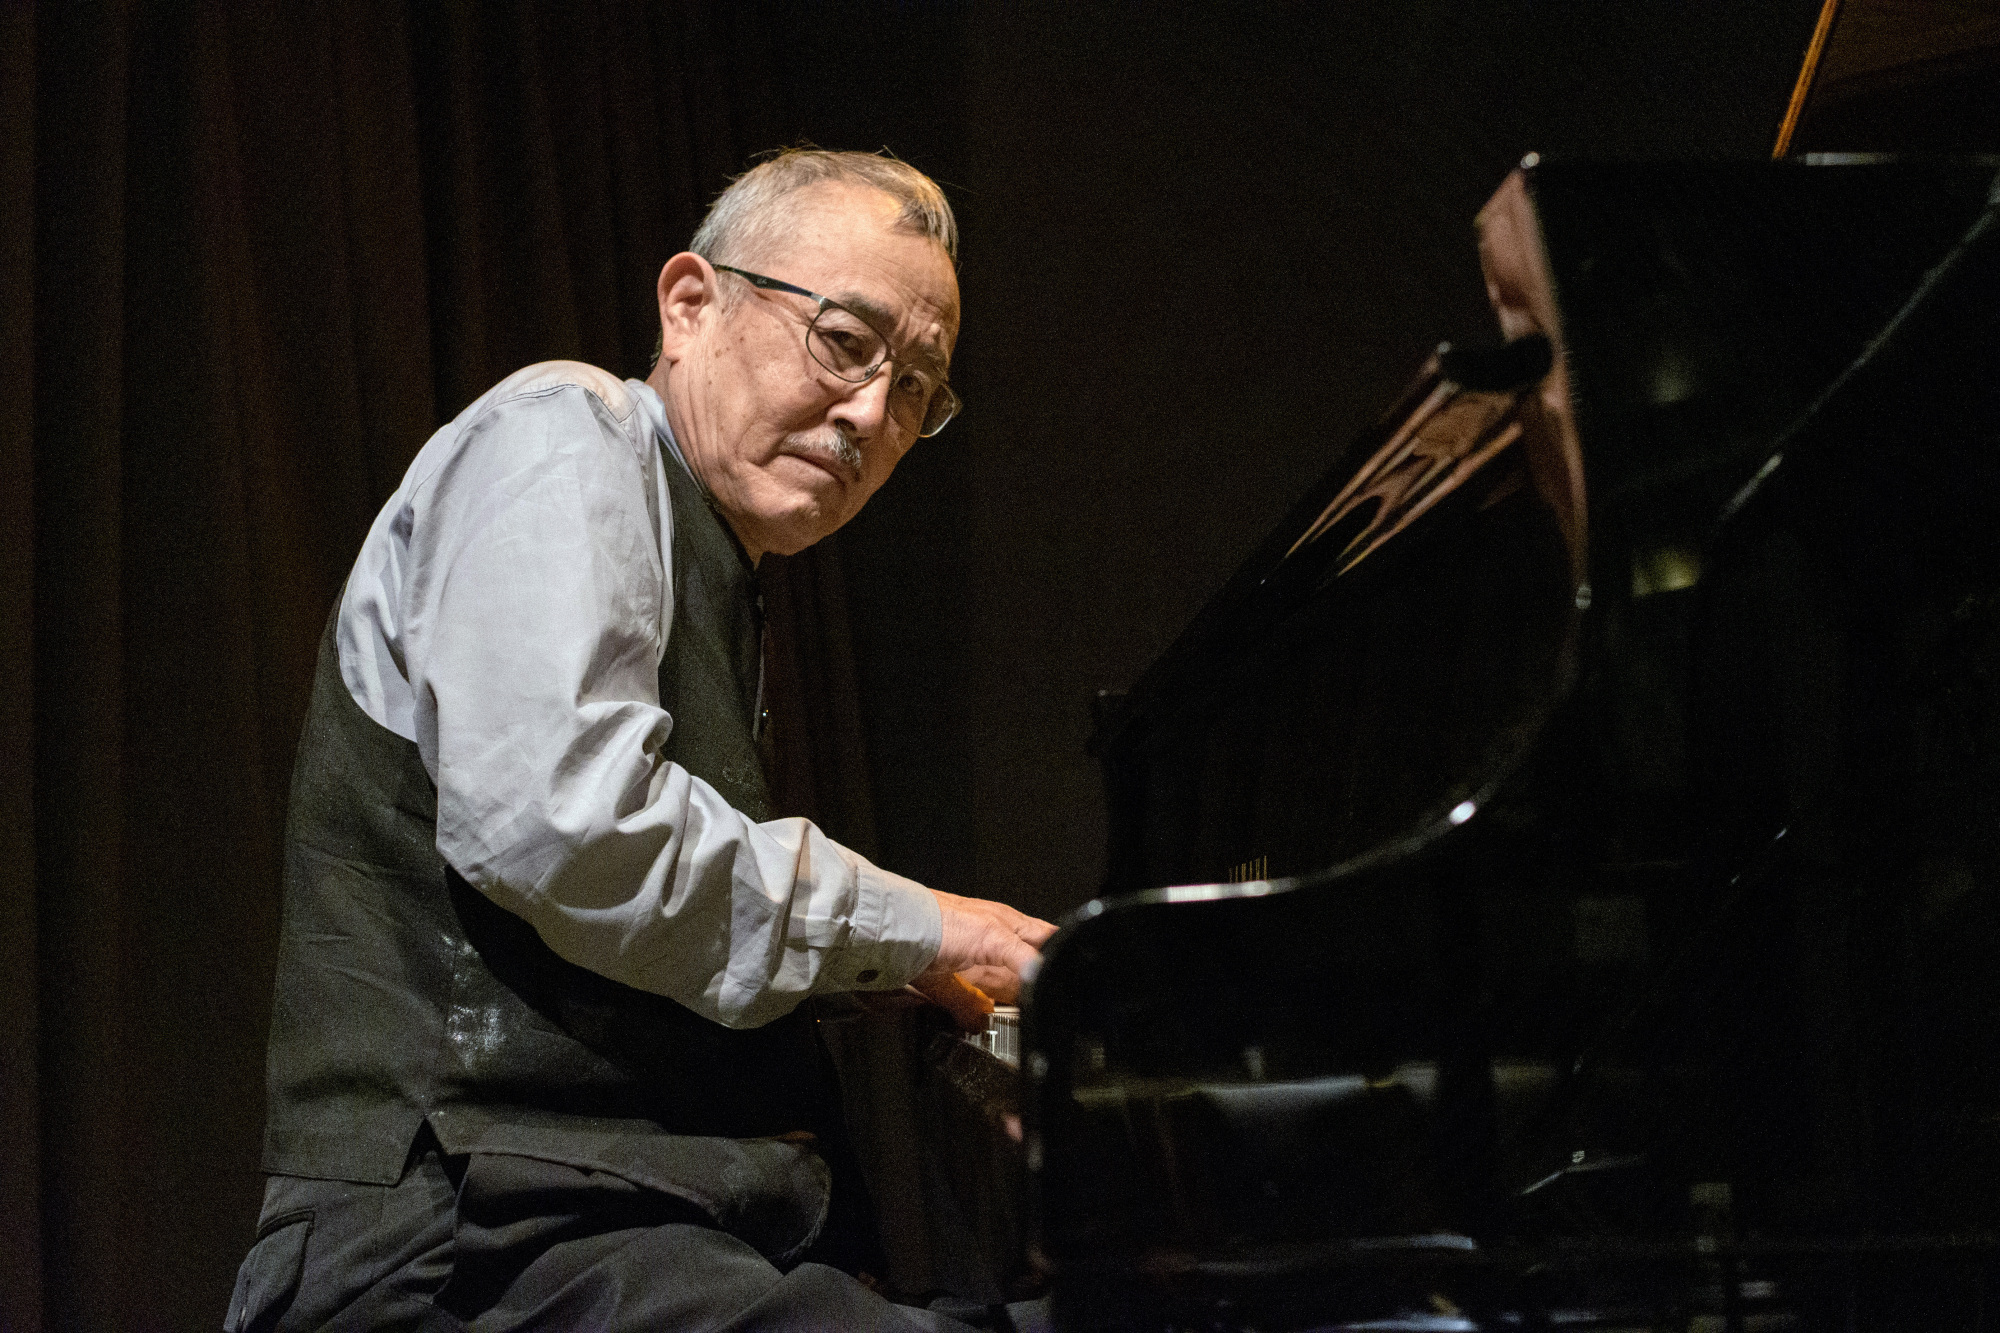 Musical crossover: Yosuke Yamashita's free jazz trio aimed at an audience beyond the avant-garde scene, and was embraced by rock and folk fans.   JAMES HADFIELD